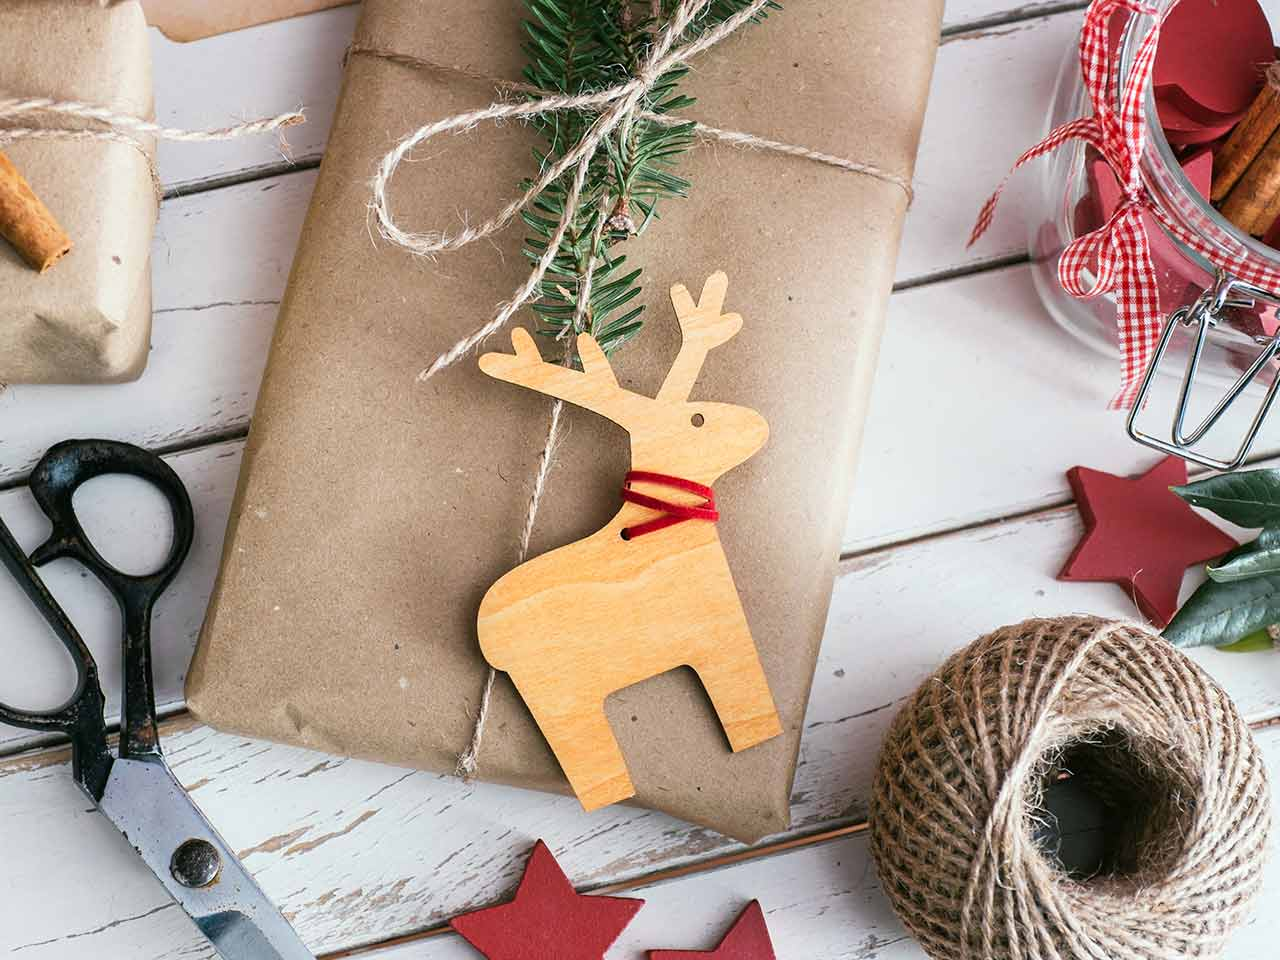 Christmas card and decoration making materials